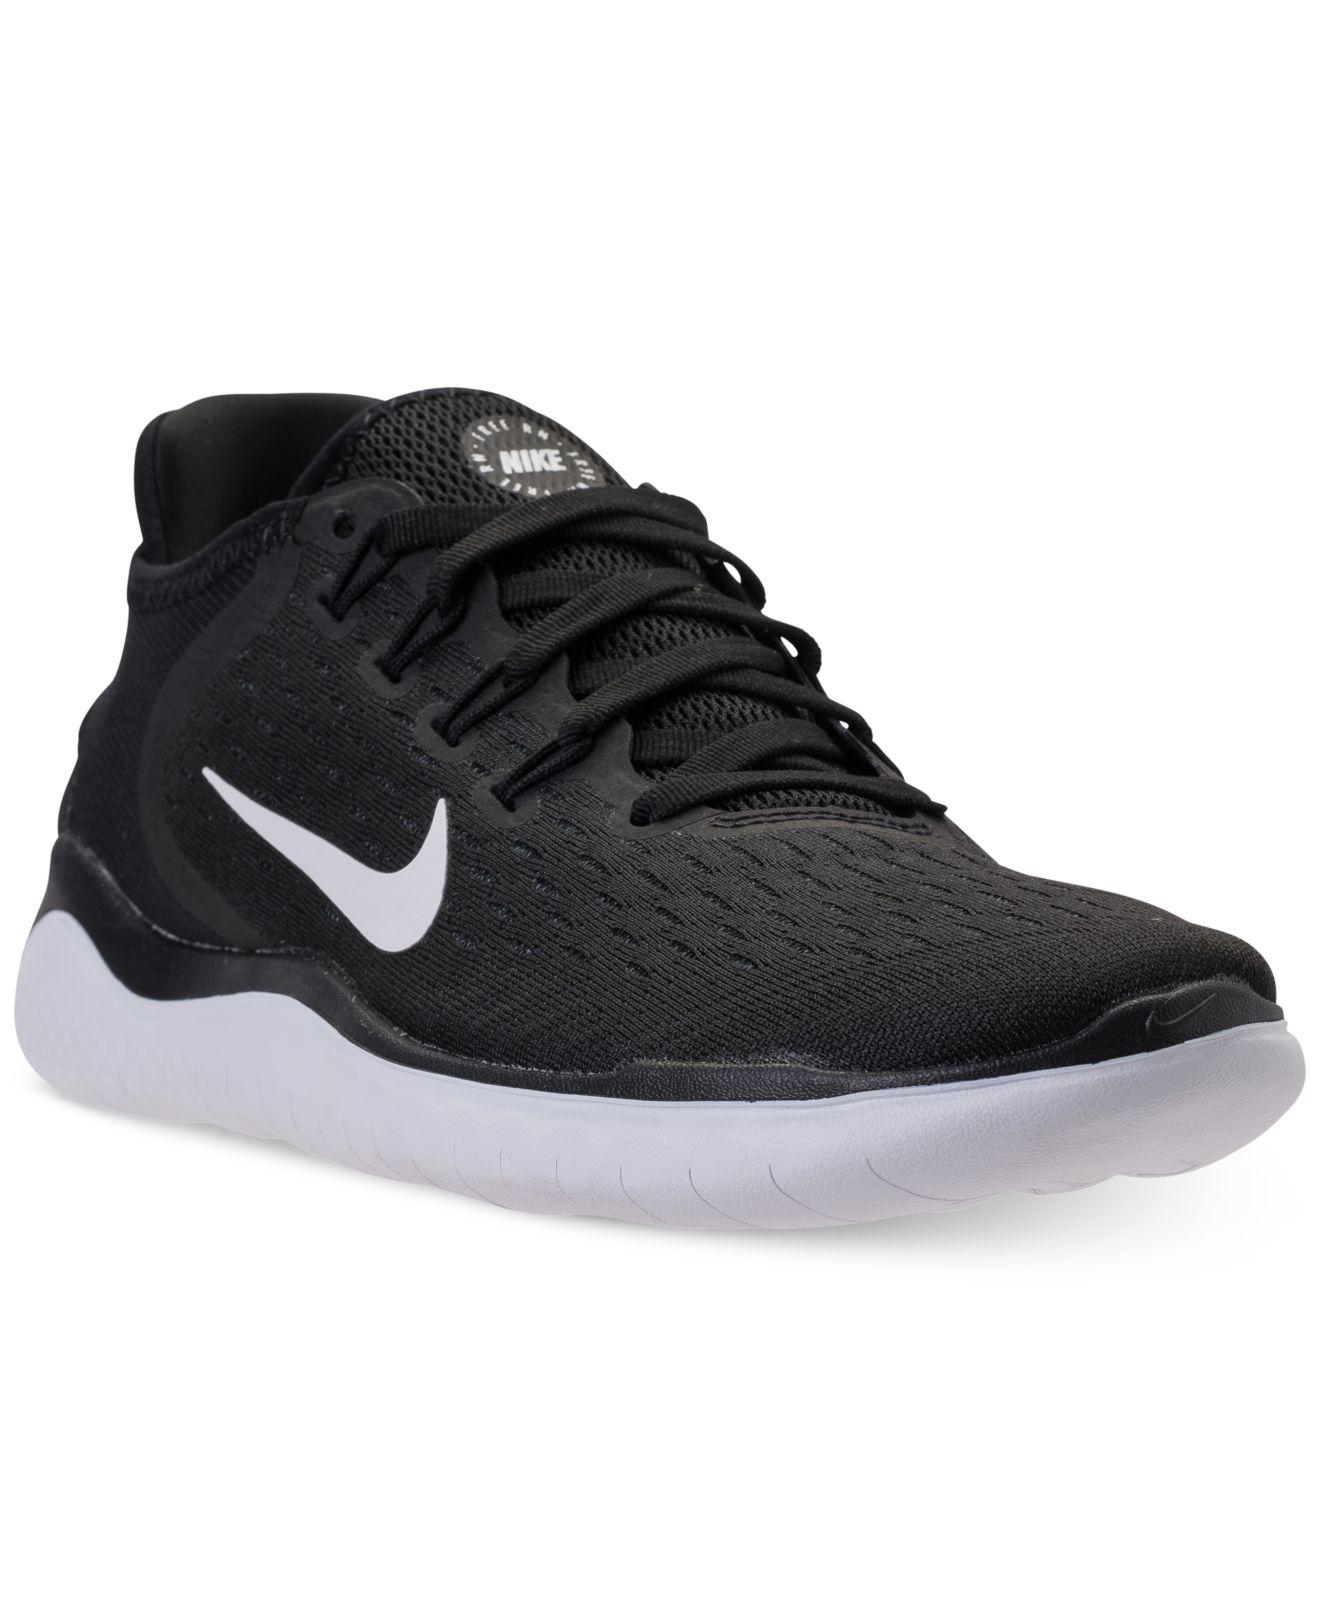 f289905260a69 ... sweden nike. womens black free run 2018 running sneakers from finish  line c3e3e fbedf